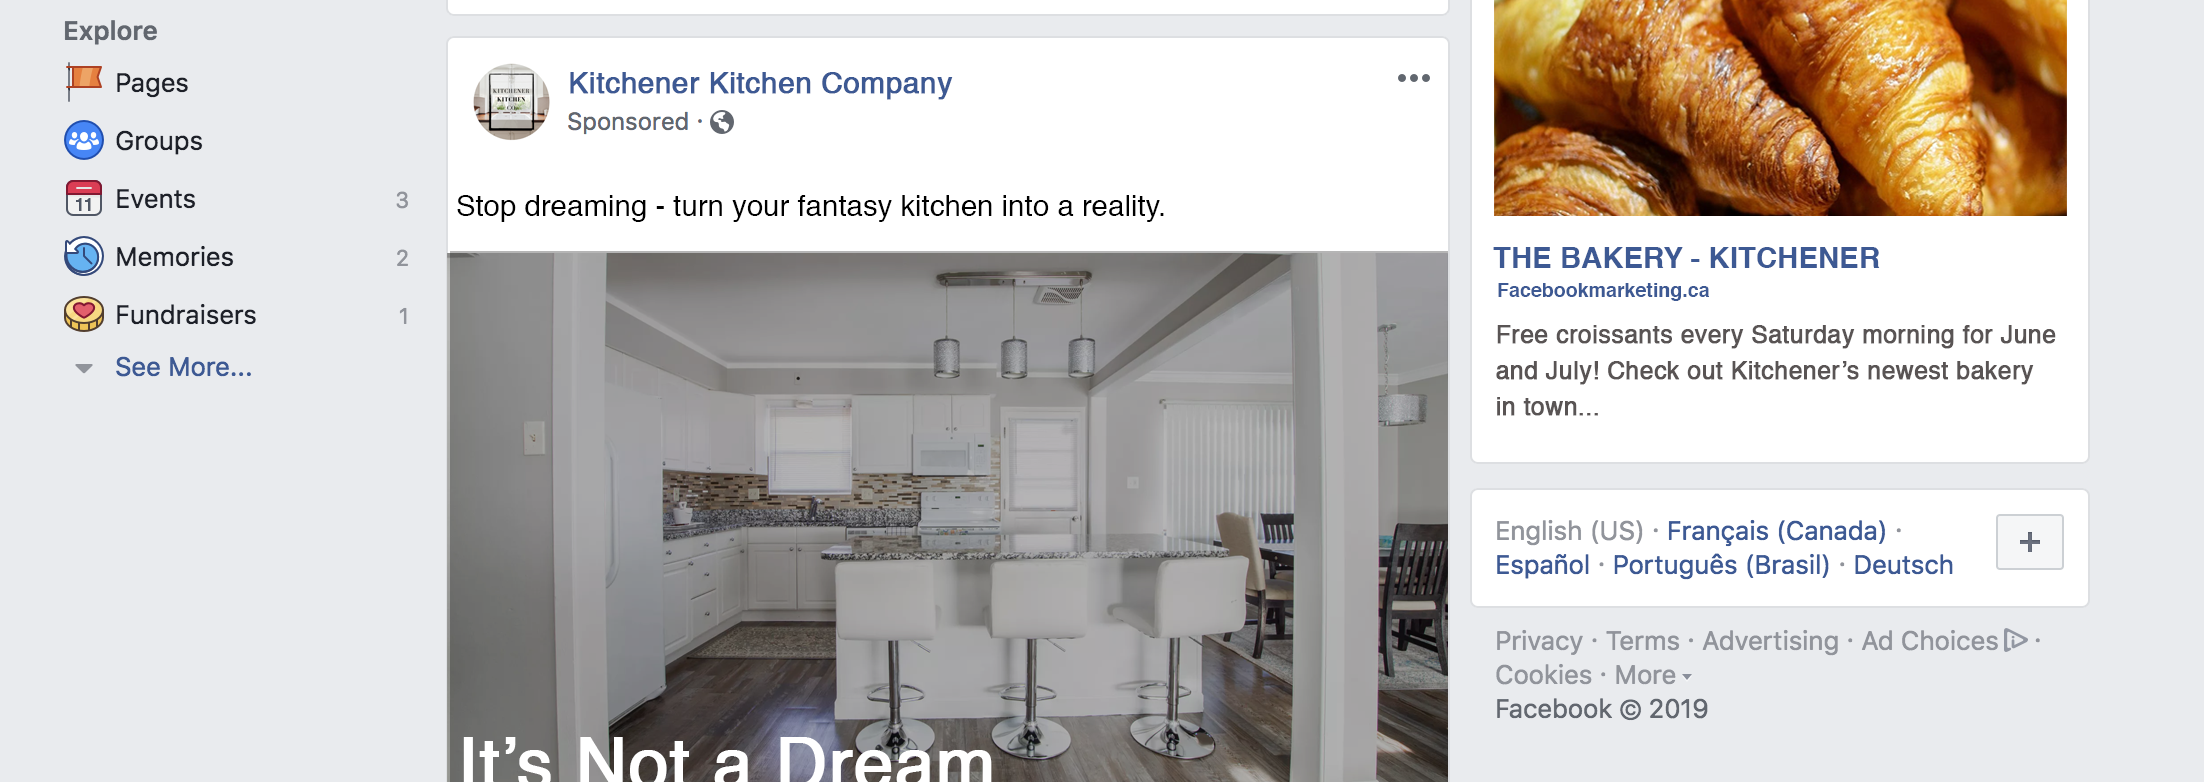 Example of what local advertisements could look like on Facebook